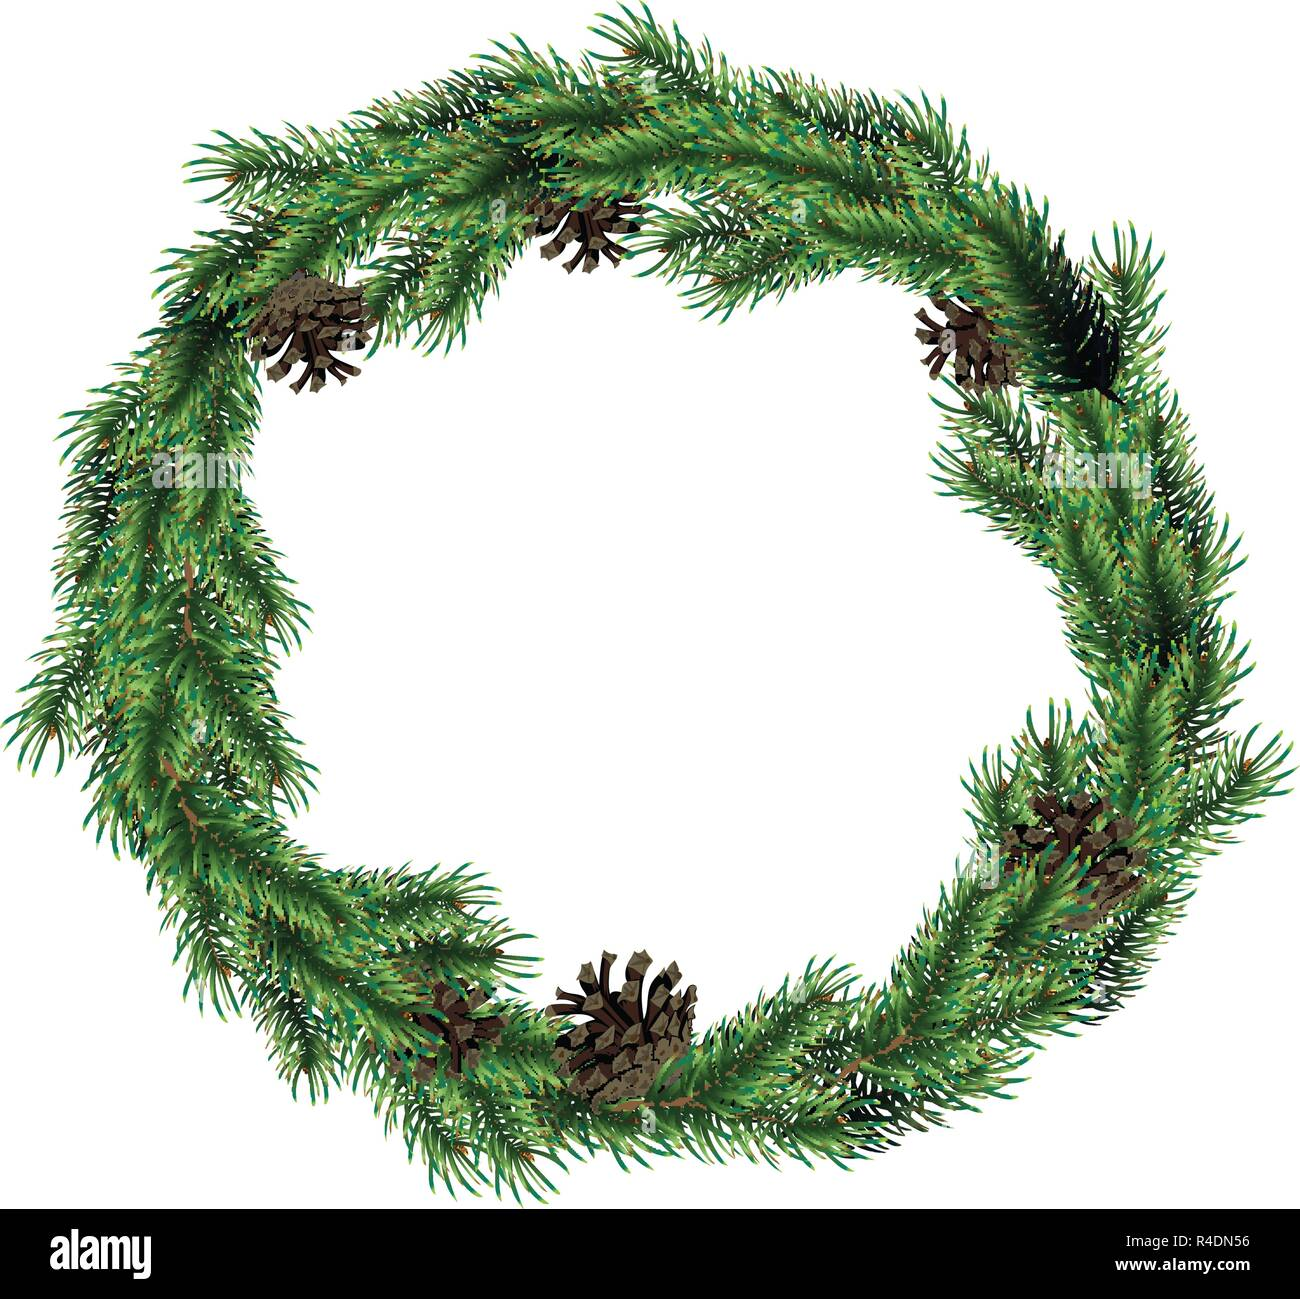 Christmas wreath of fir branches with cones. Green spruce christmas wreath. - Stock Vector